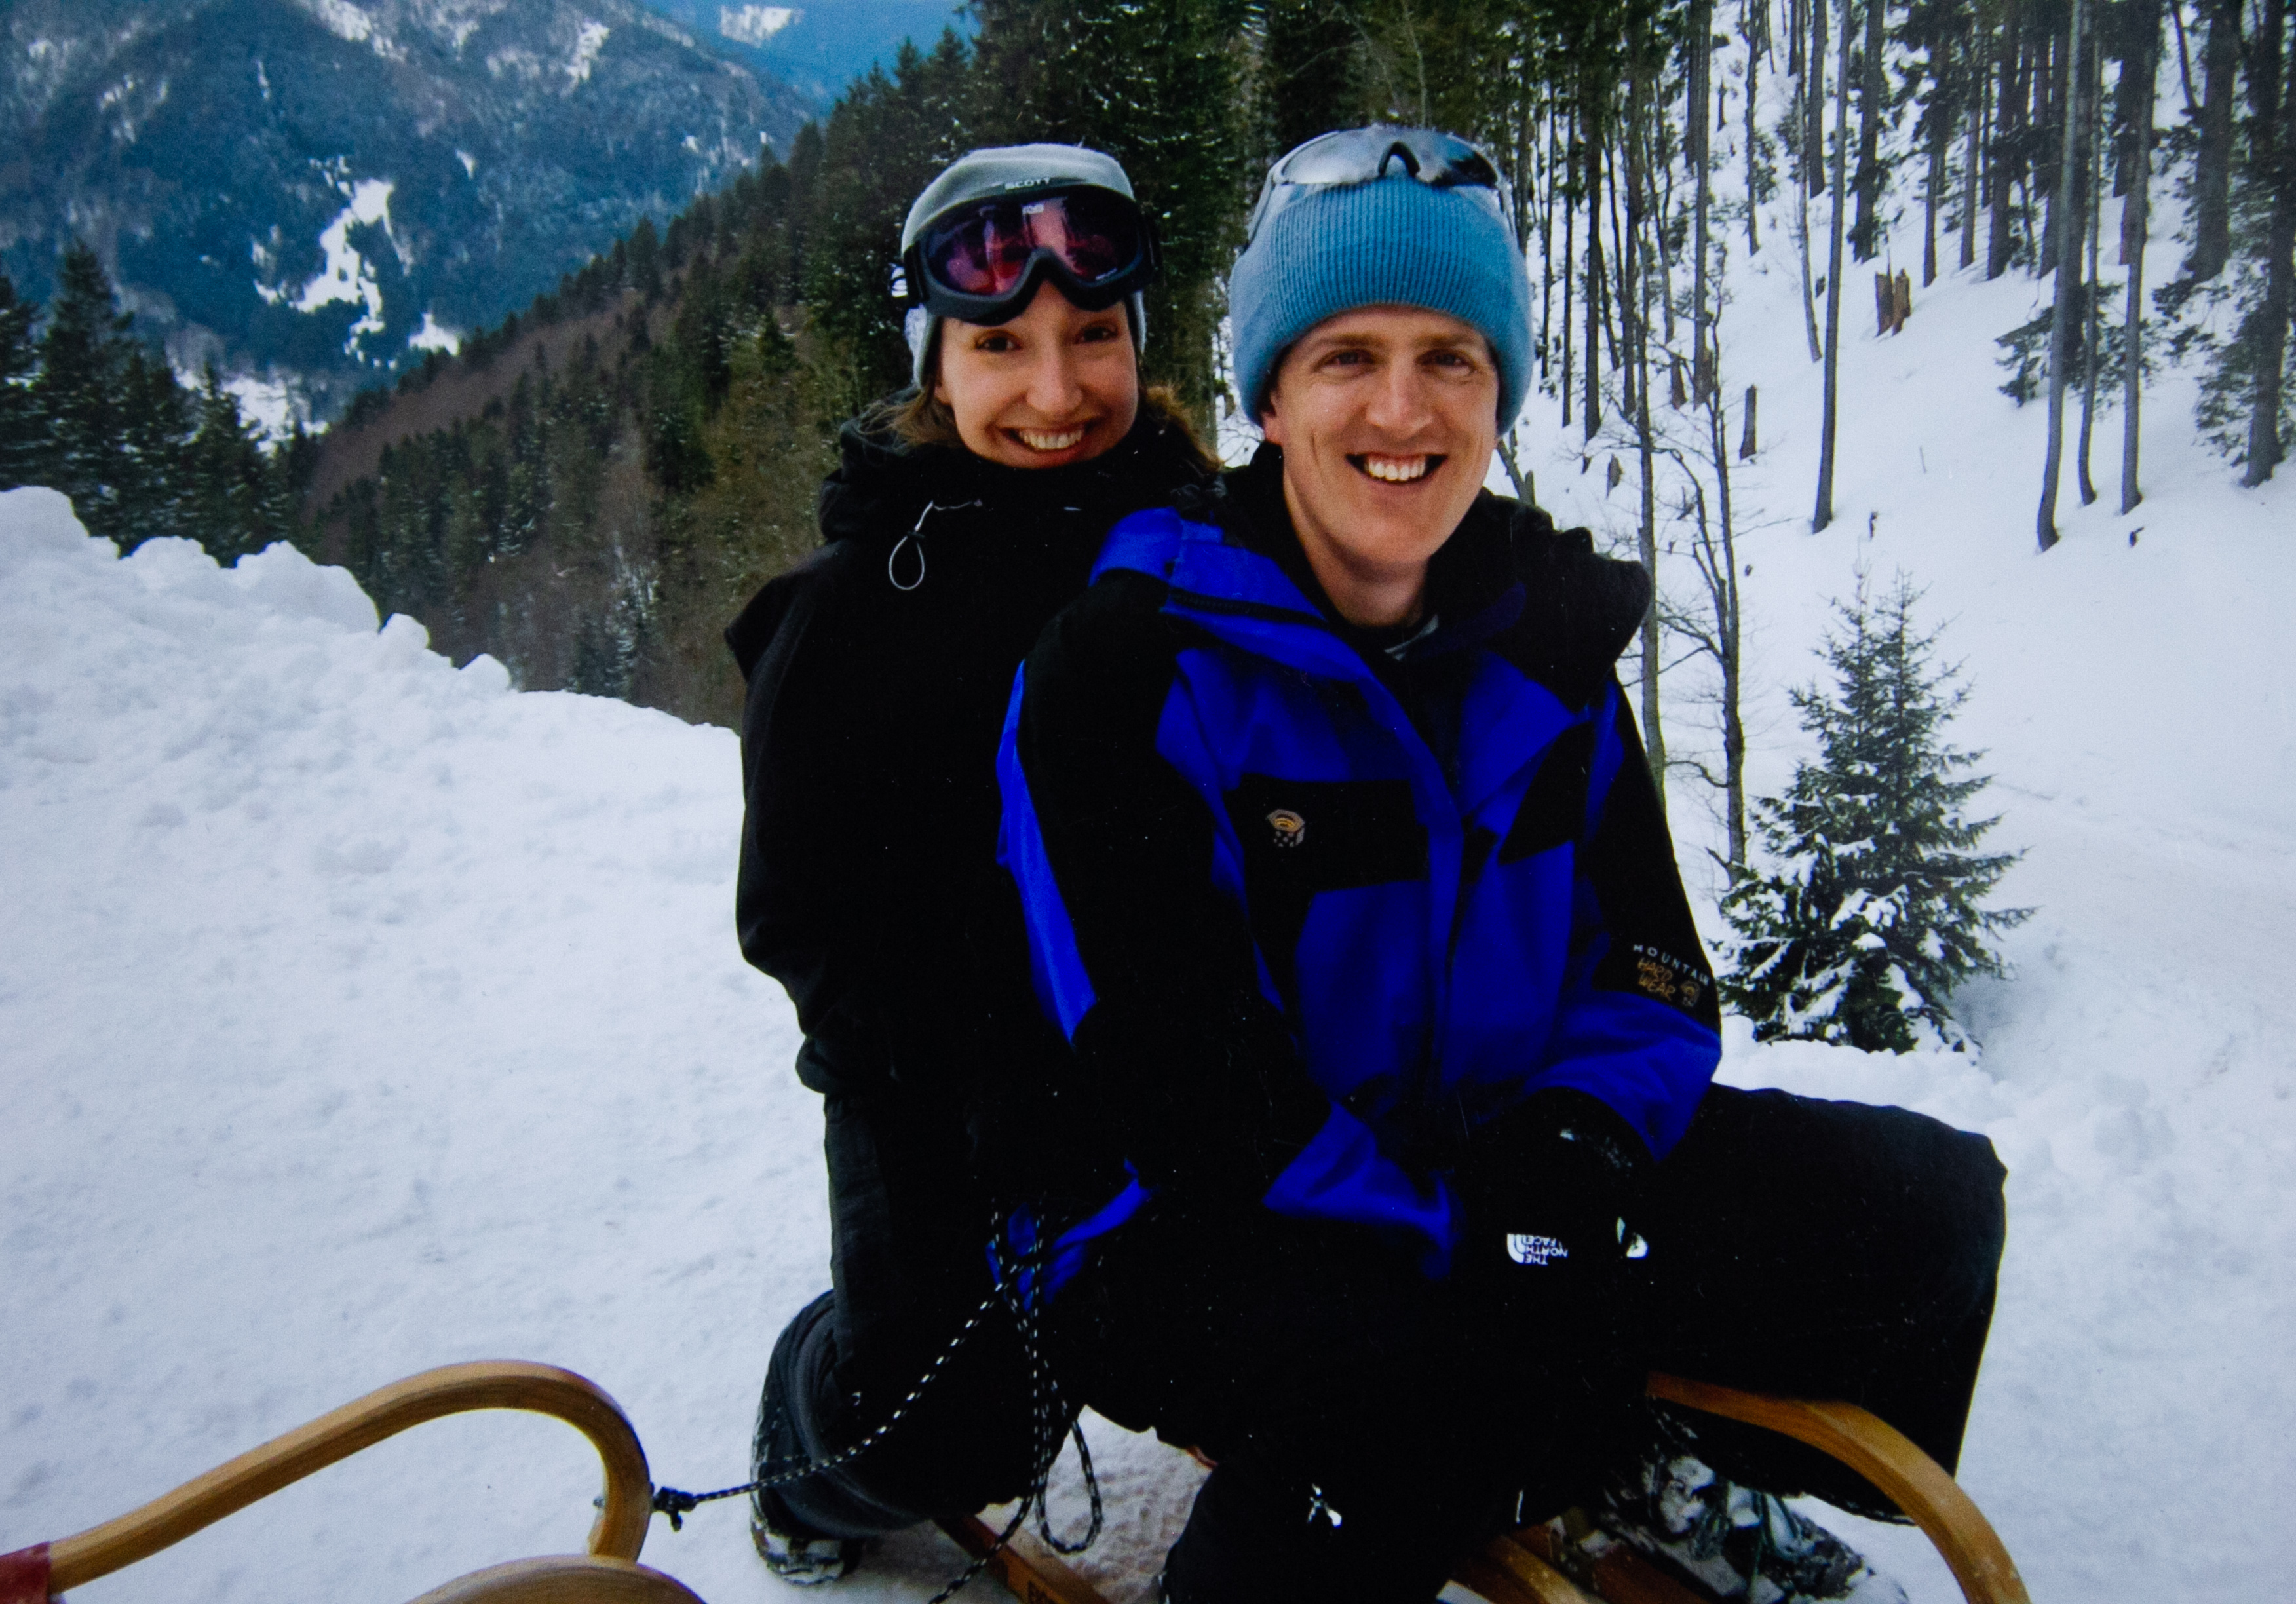 Julie Galante, with late husband Scott in the Bavarian Alps, 2011